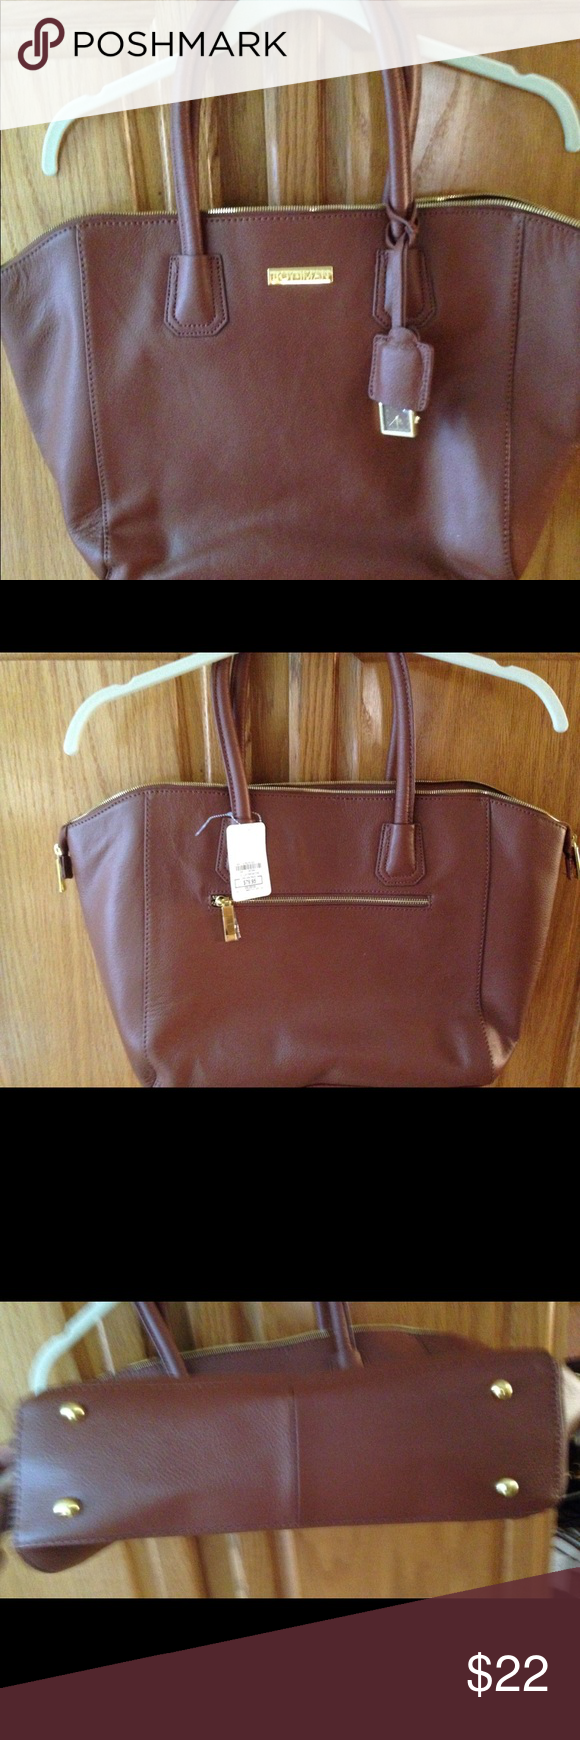 NWT Joy & Iman Leather Tote Bag (HSN) Brown leather tote bag